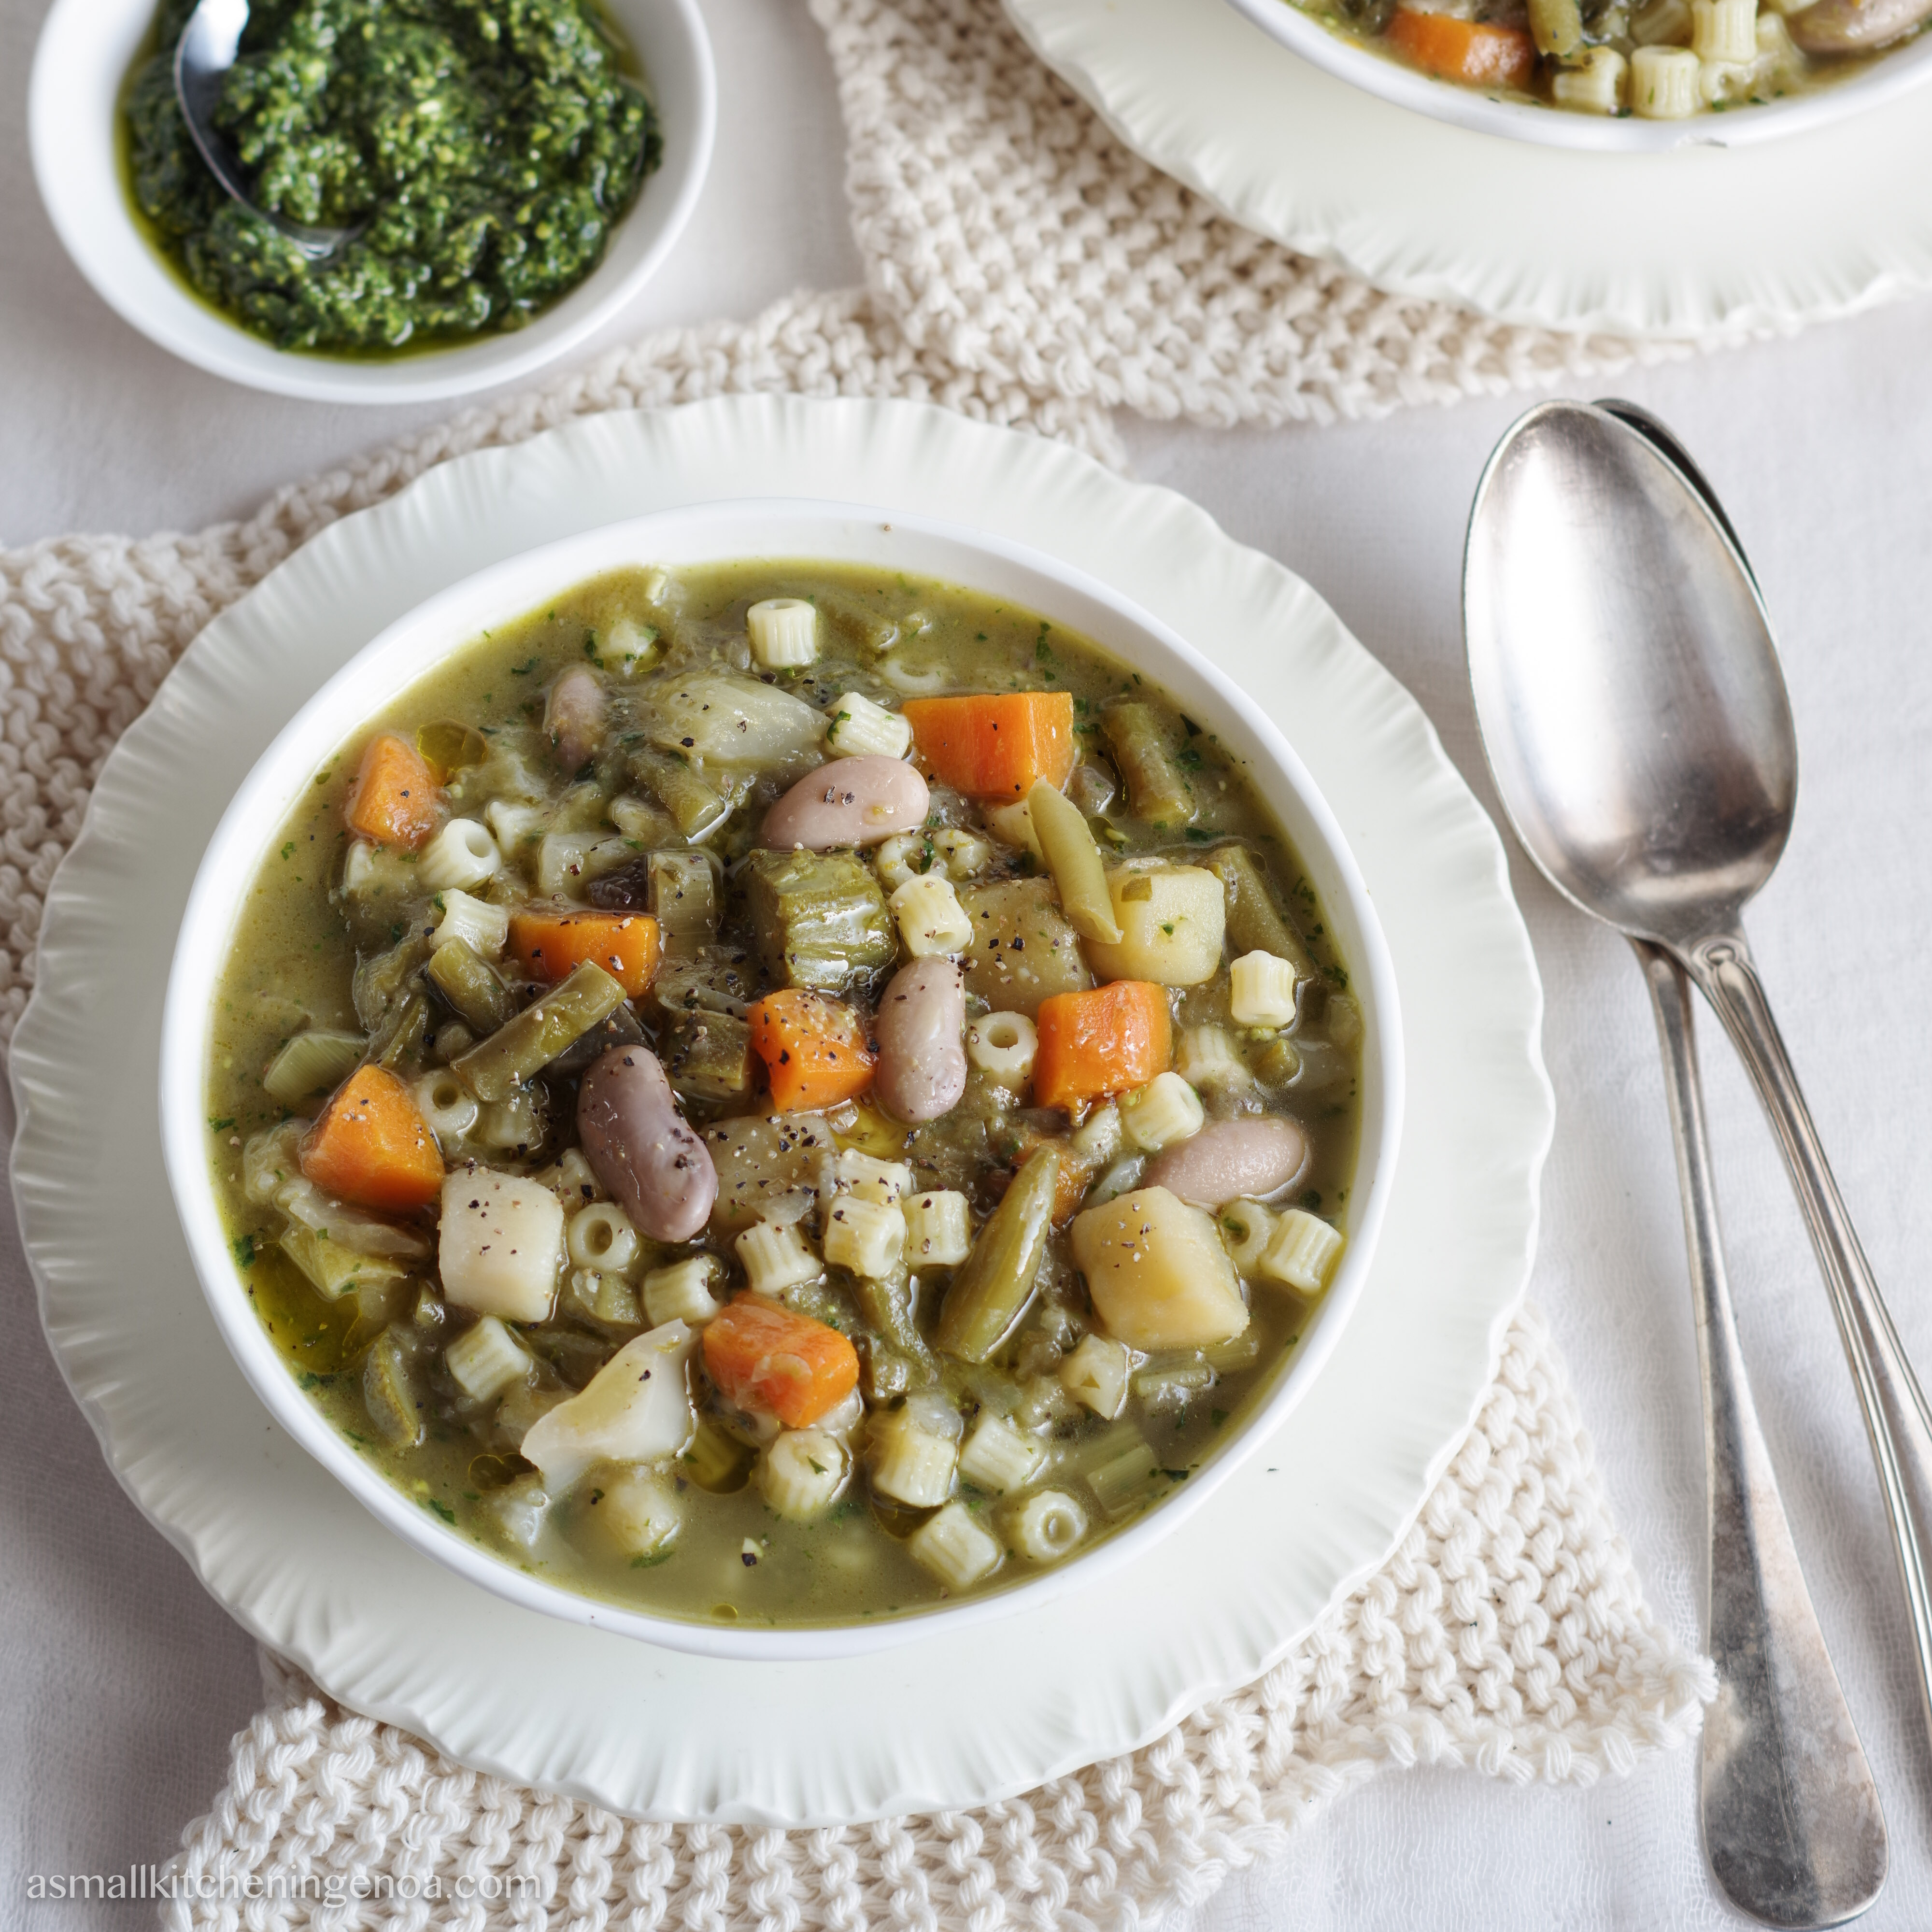 Genoese minestrone soup